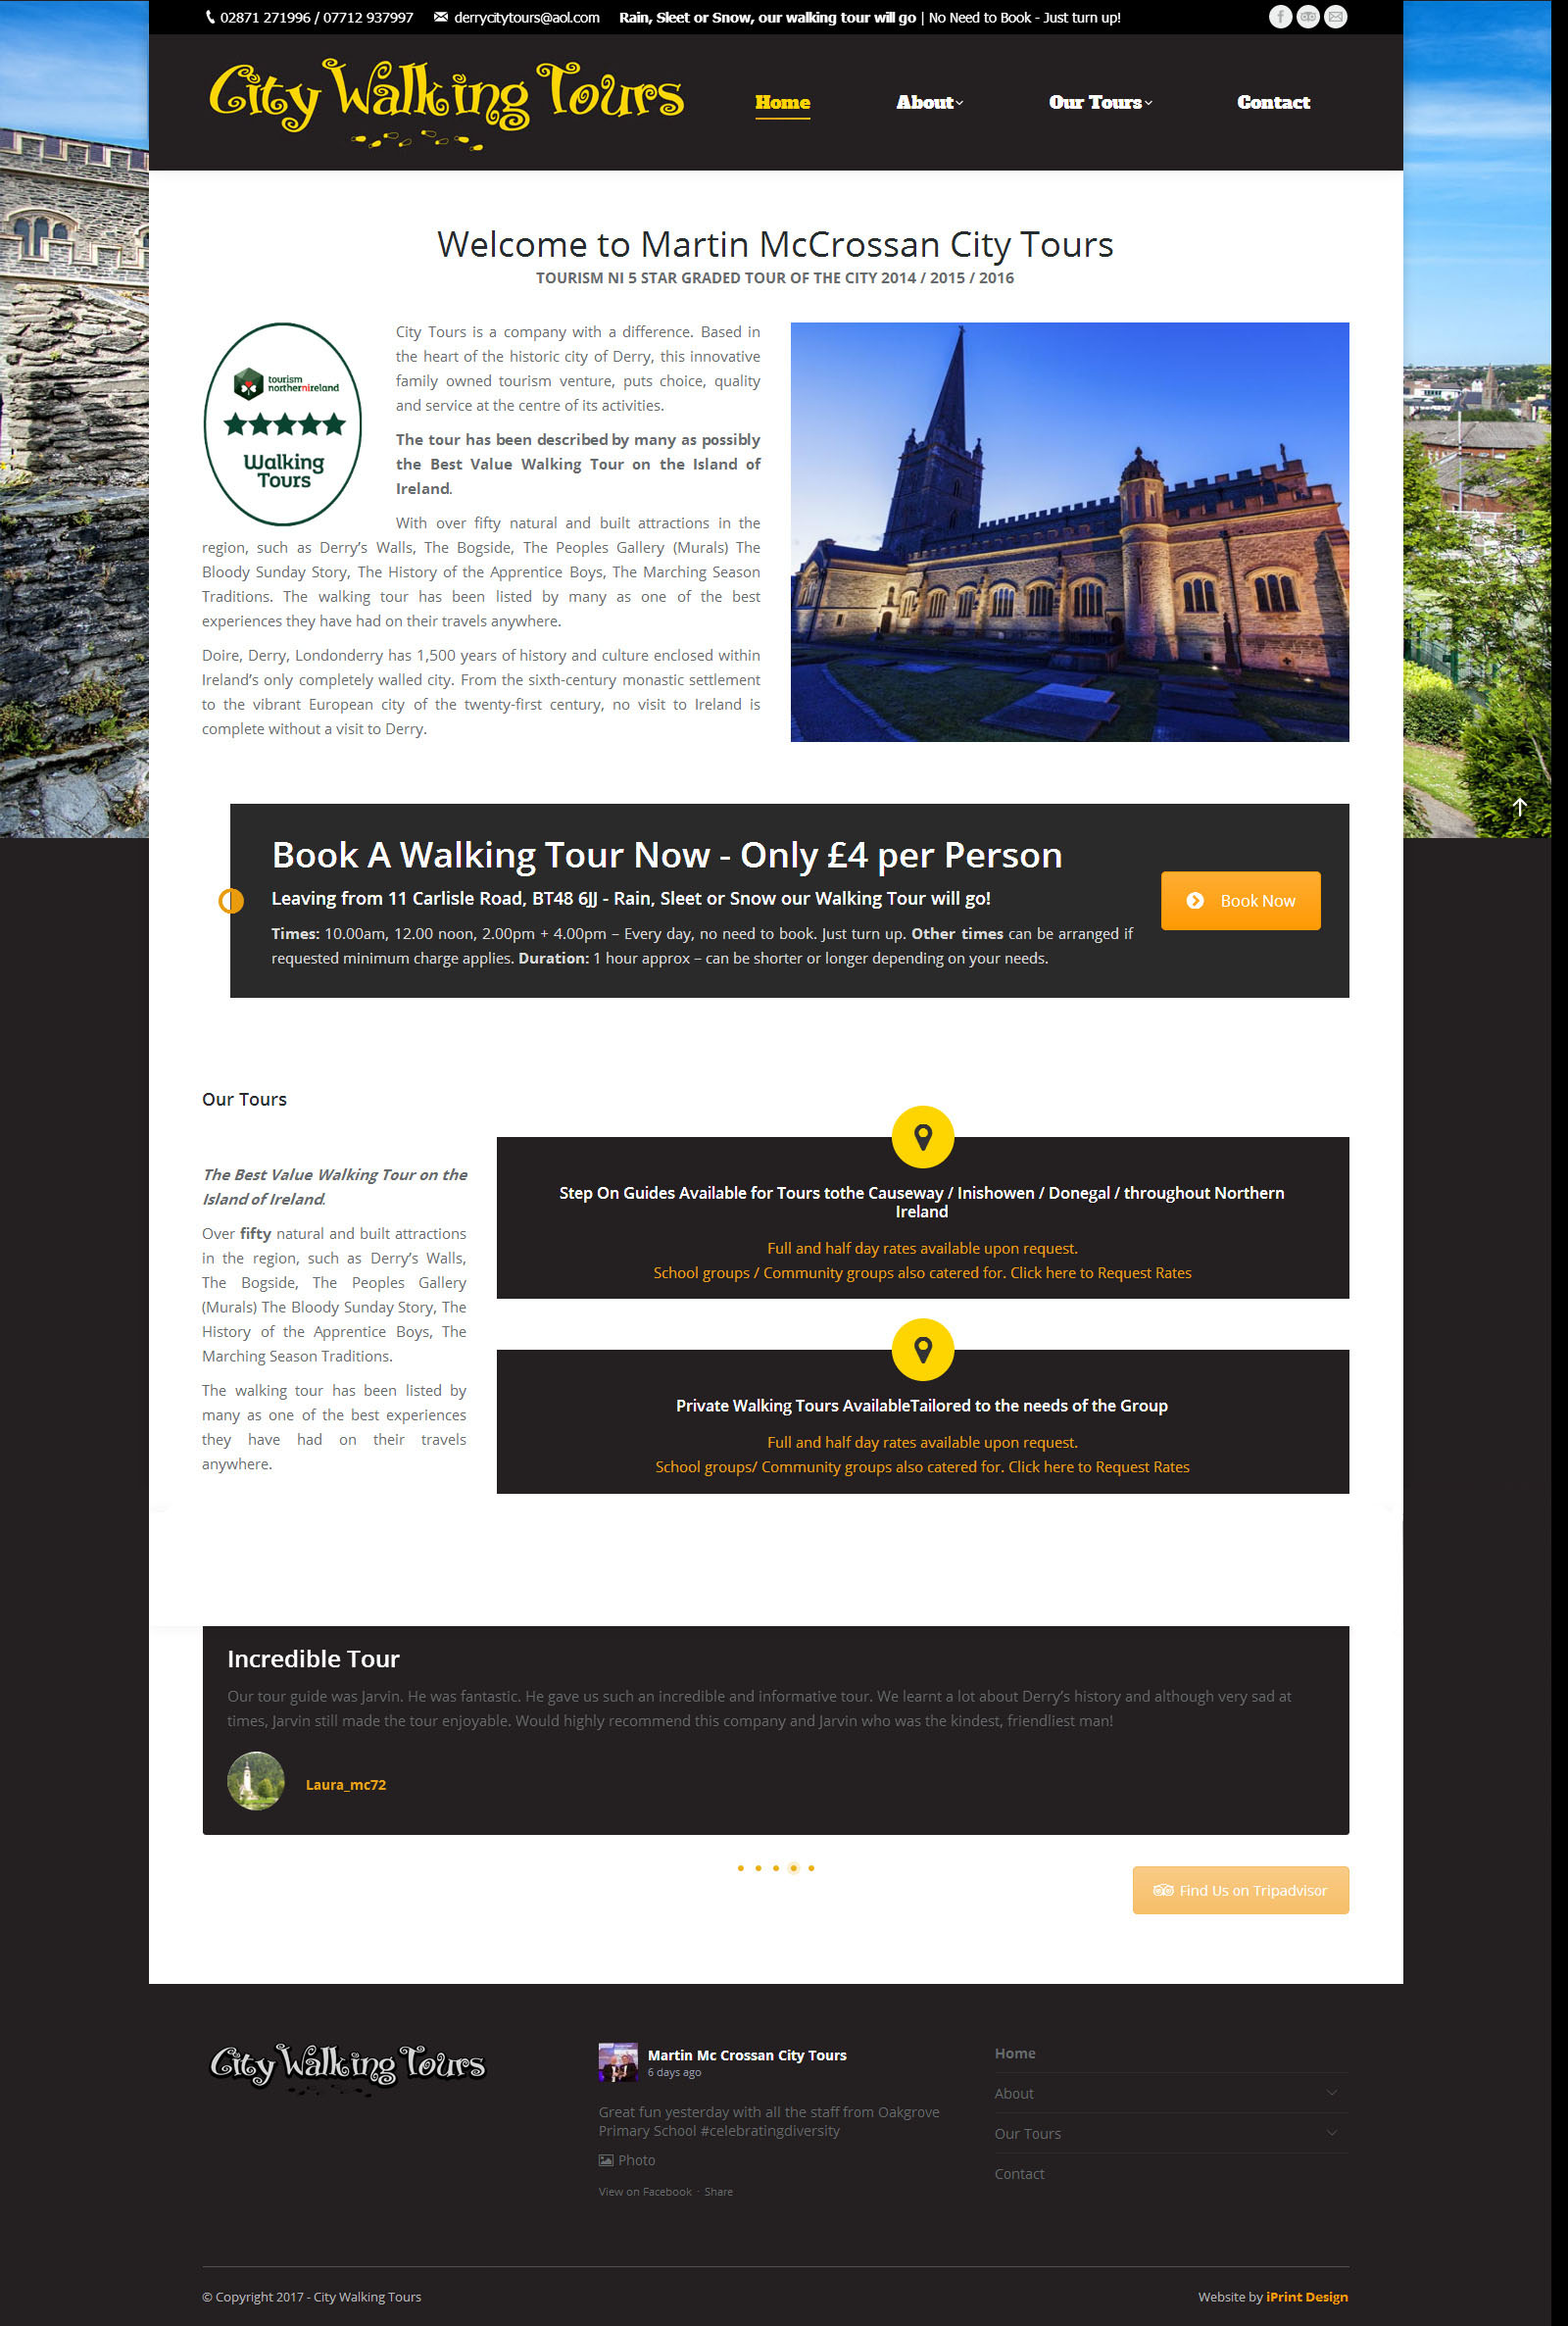 City Walking Tours - Website Sample Page 3